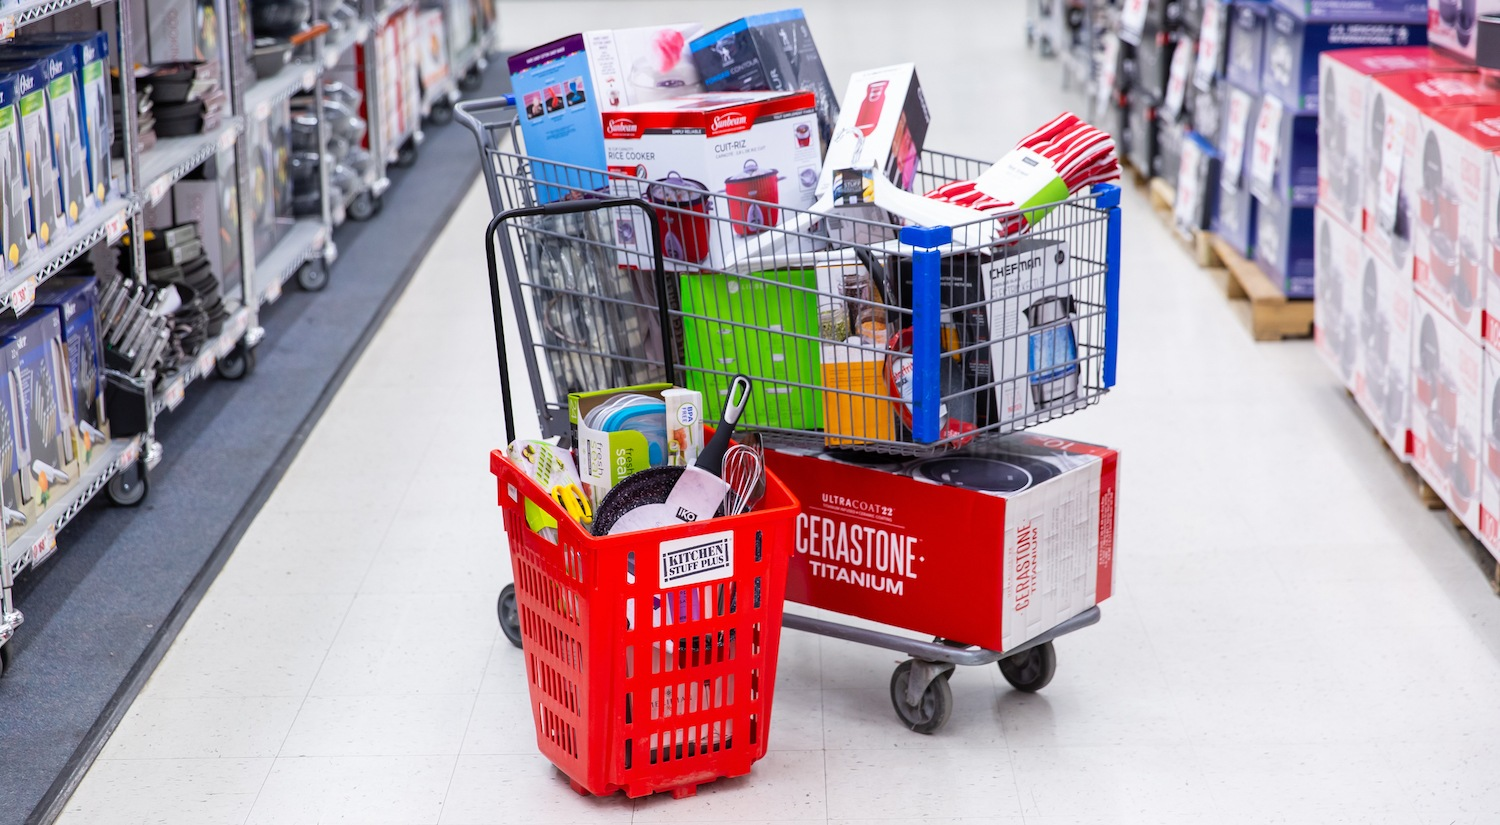 full shopping carts at warehouse sale